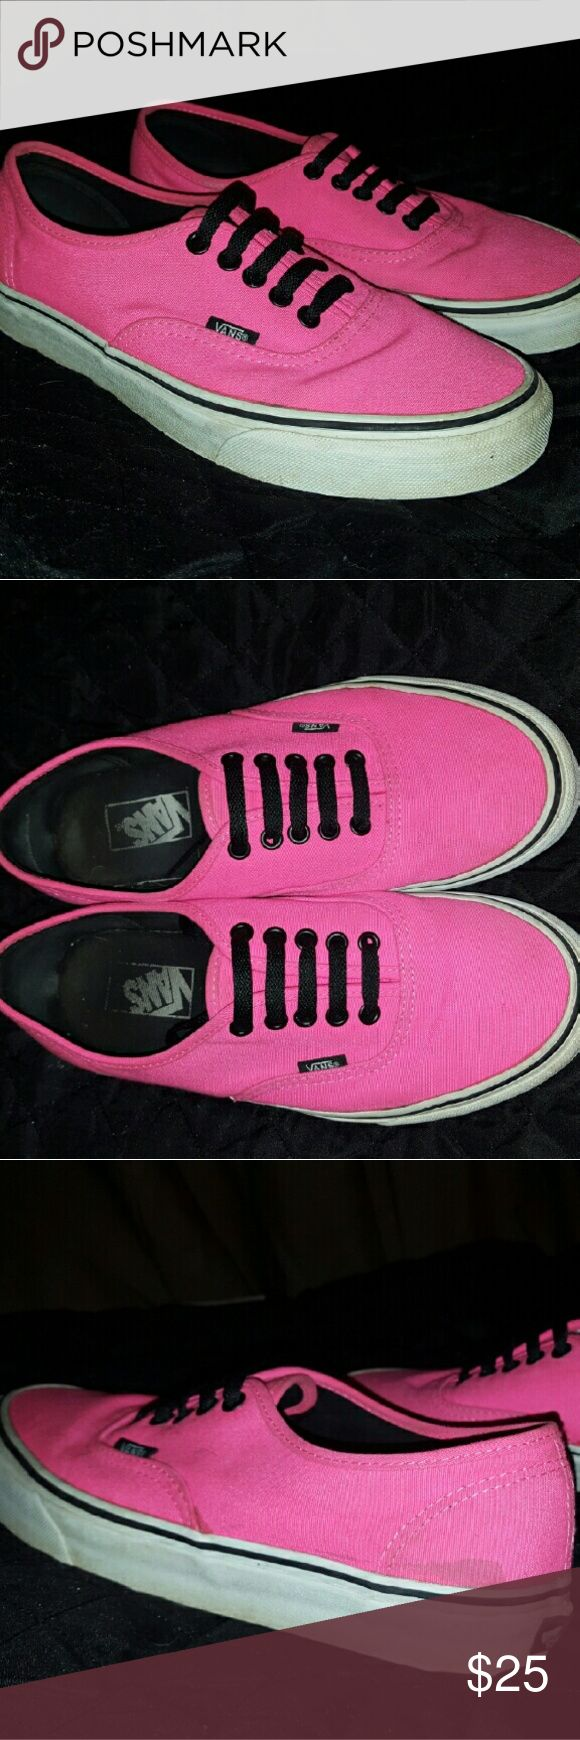 Neon Pink Vans **price negotiable!** Bright pink Vans, worn but in pretty good condition aside from a couple spots. Good for adding a pop of color to any outfit. Price is negotiable!!! Vans Shoes